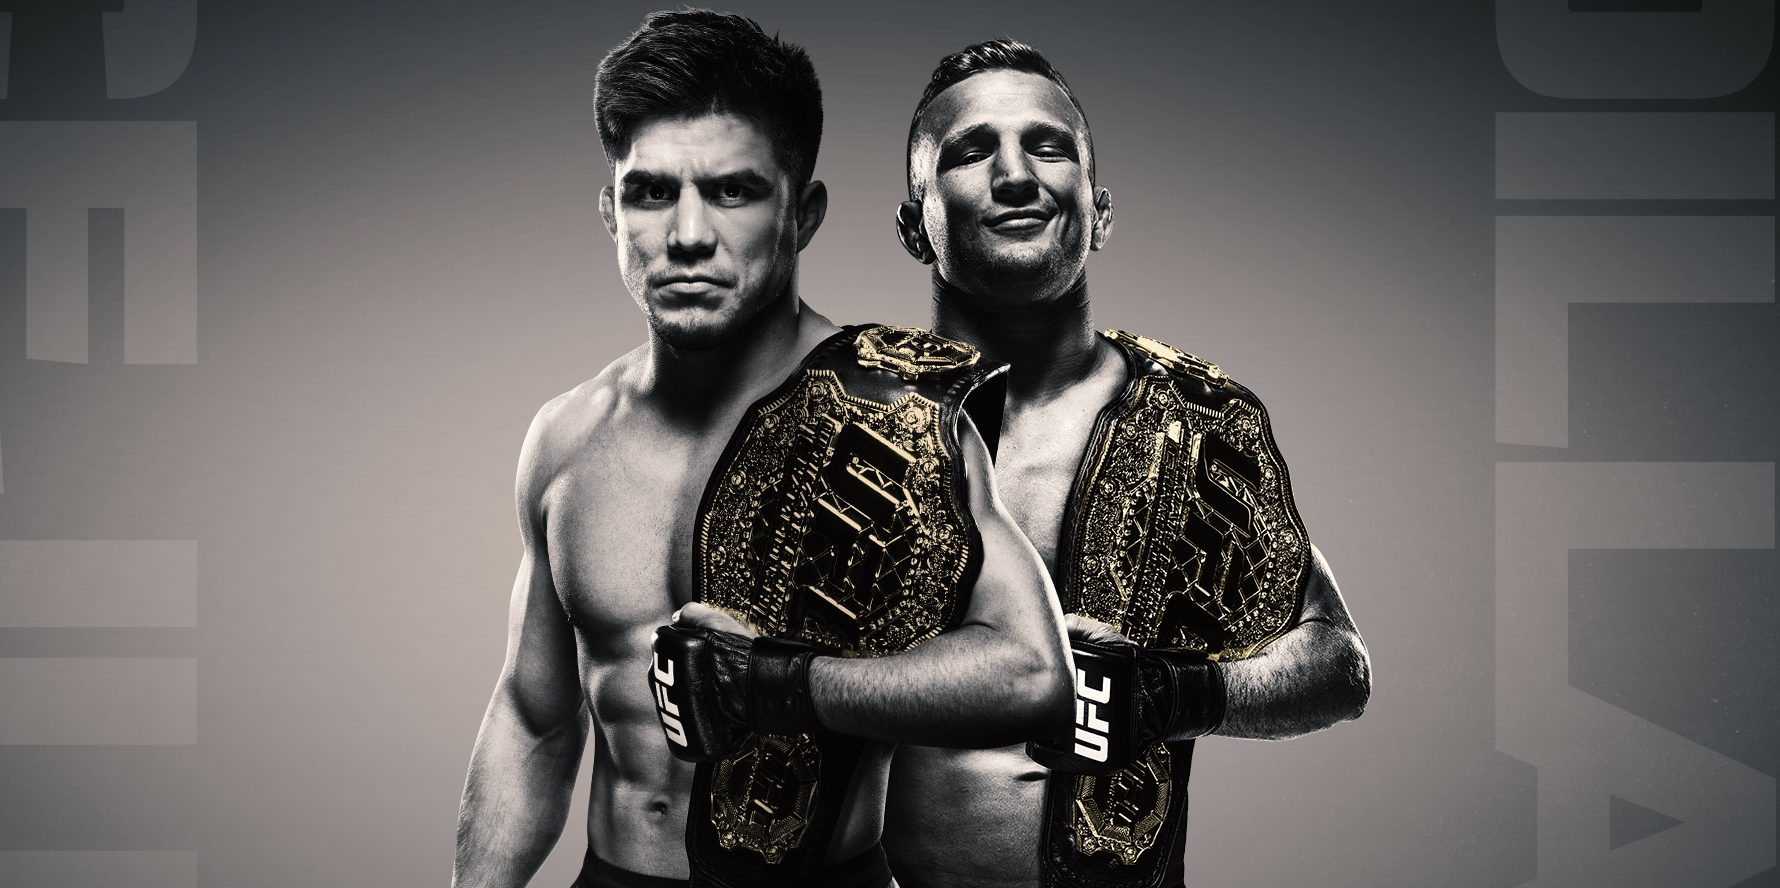 cejudo vs dillashaw predictions and picks fight night 143